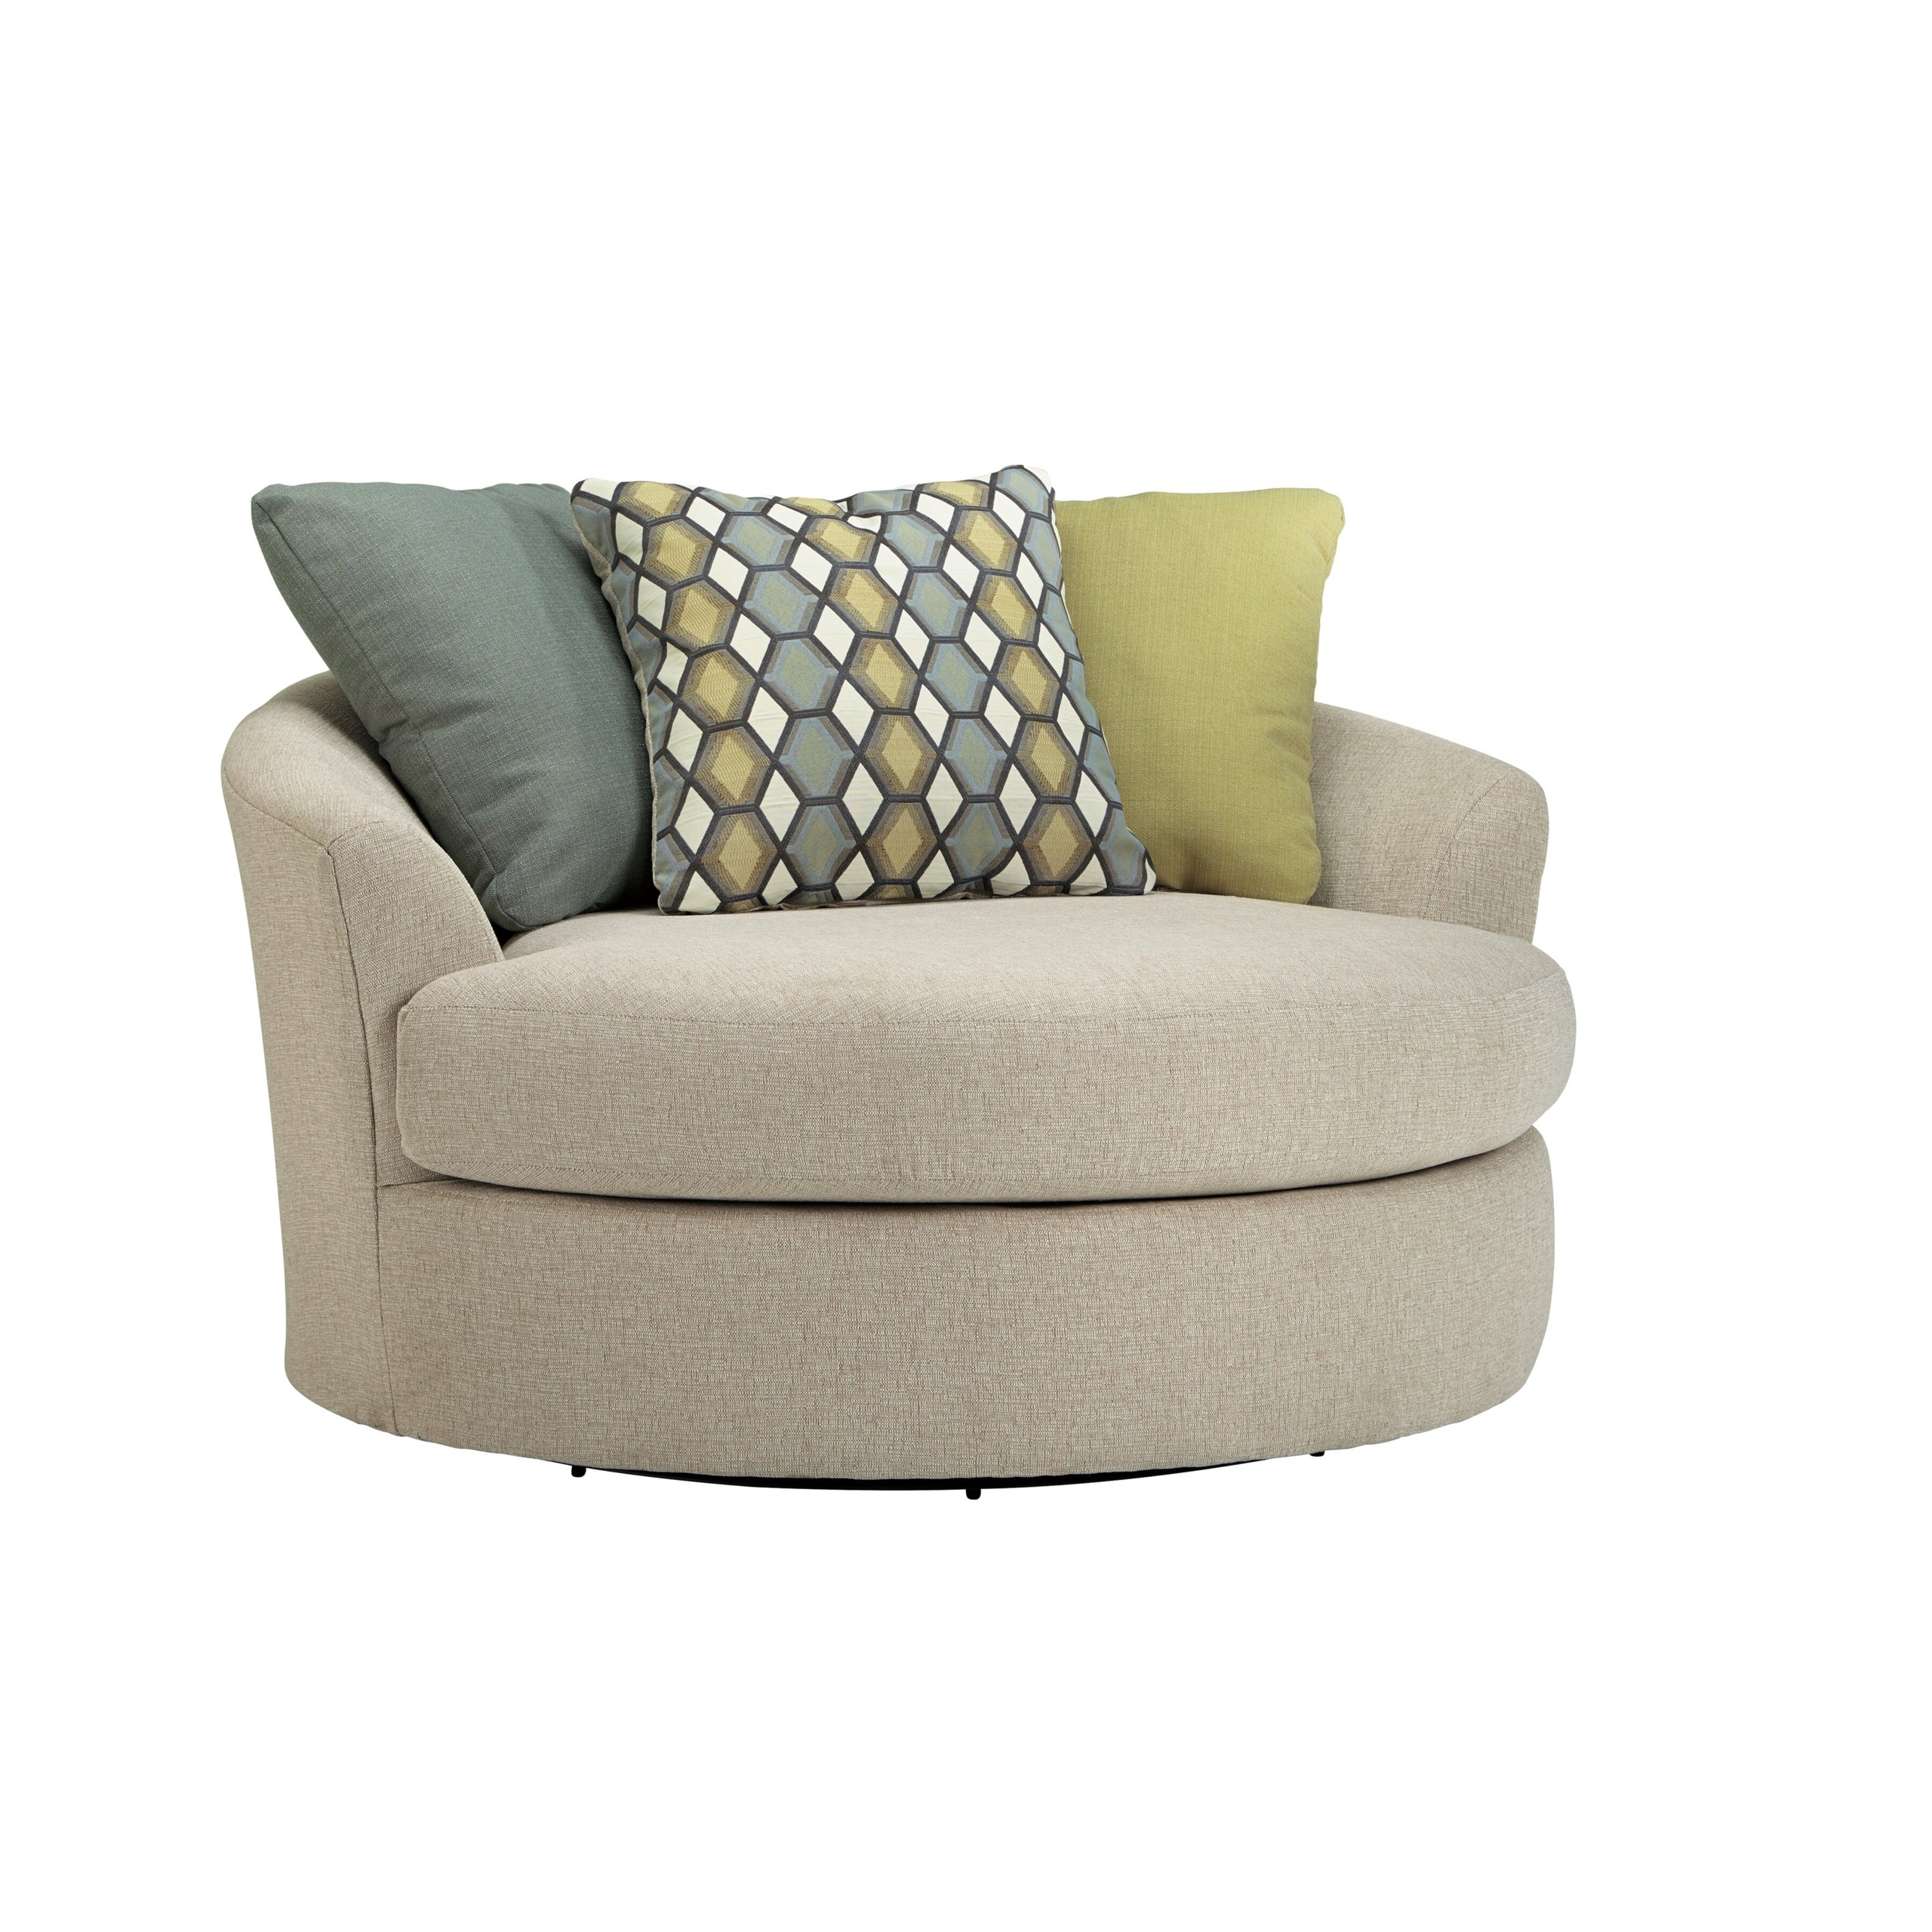 Casheral Oversized Swivel Chair  sc 1 st  Foter : oversized circle chair - Cheerinfomania.Com